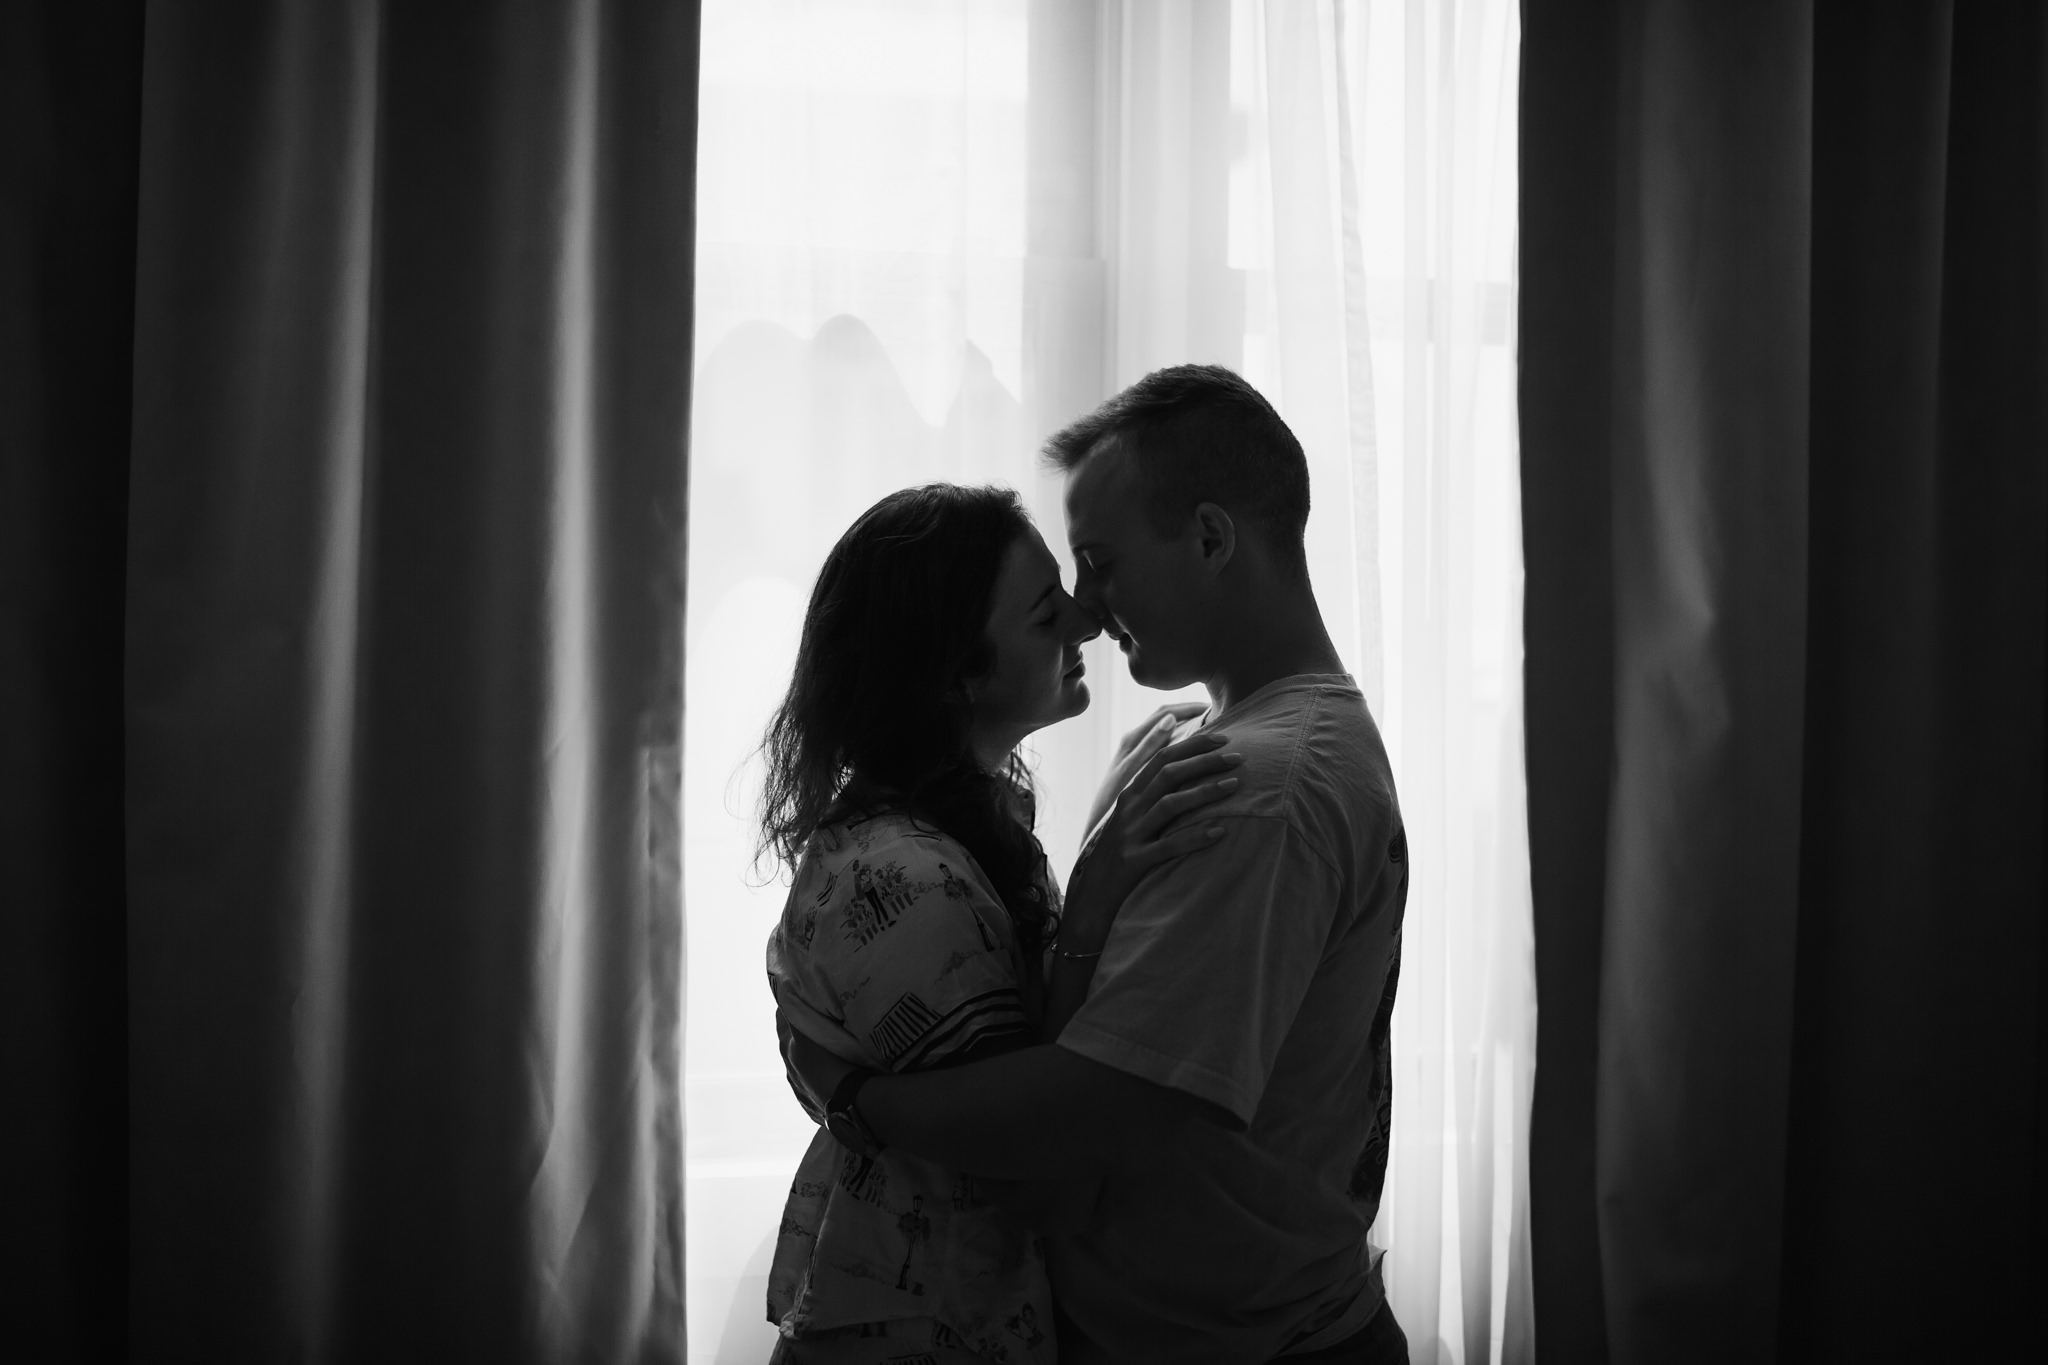 in-home-session-newlyweds-cassie-cook-photography-rosemary-beach-36.jpg